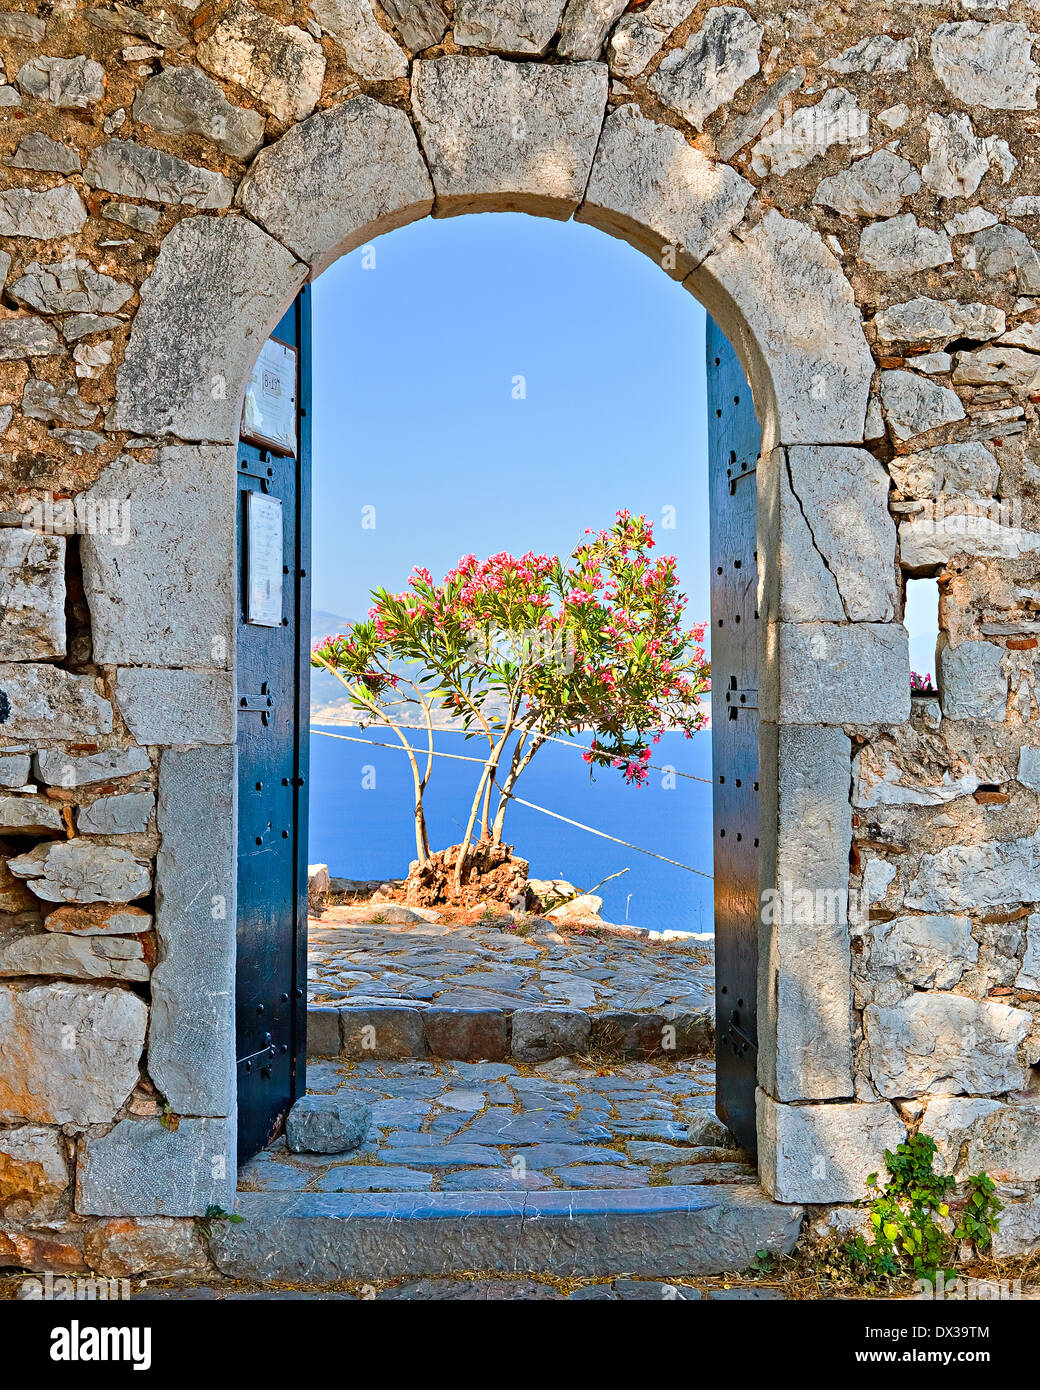 Cancello in fortezza Palamidi, Nafplio, Grecia Foto Stock